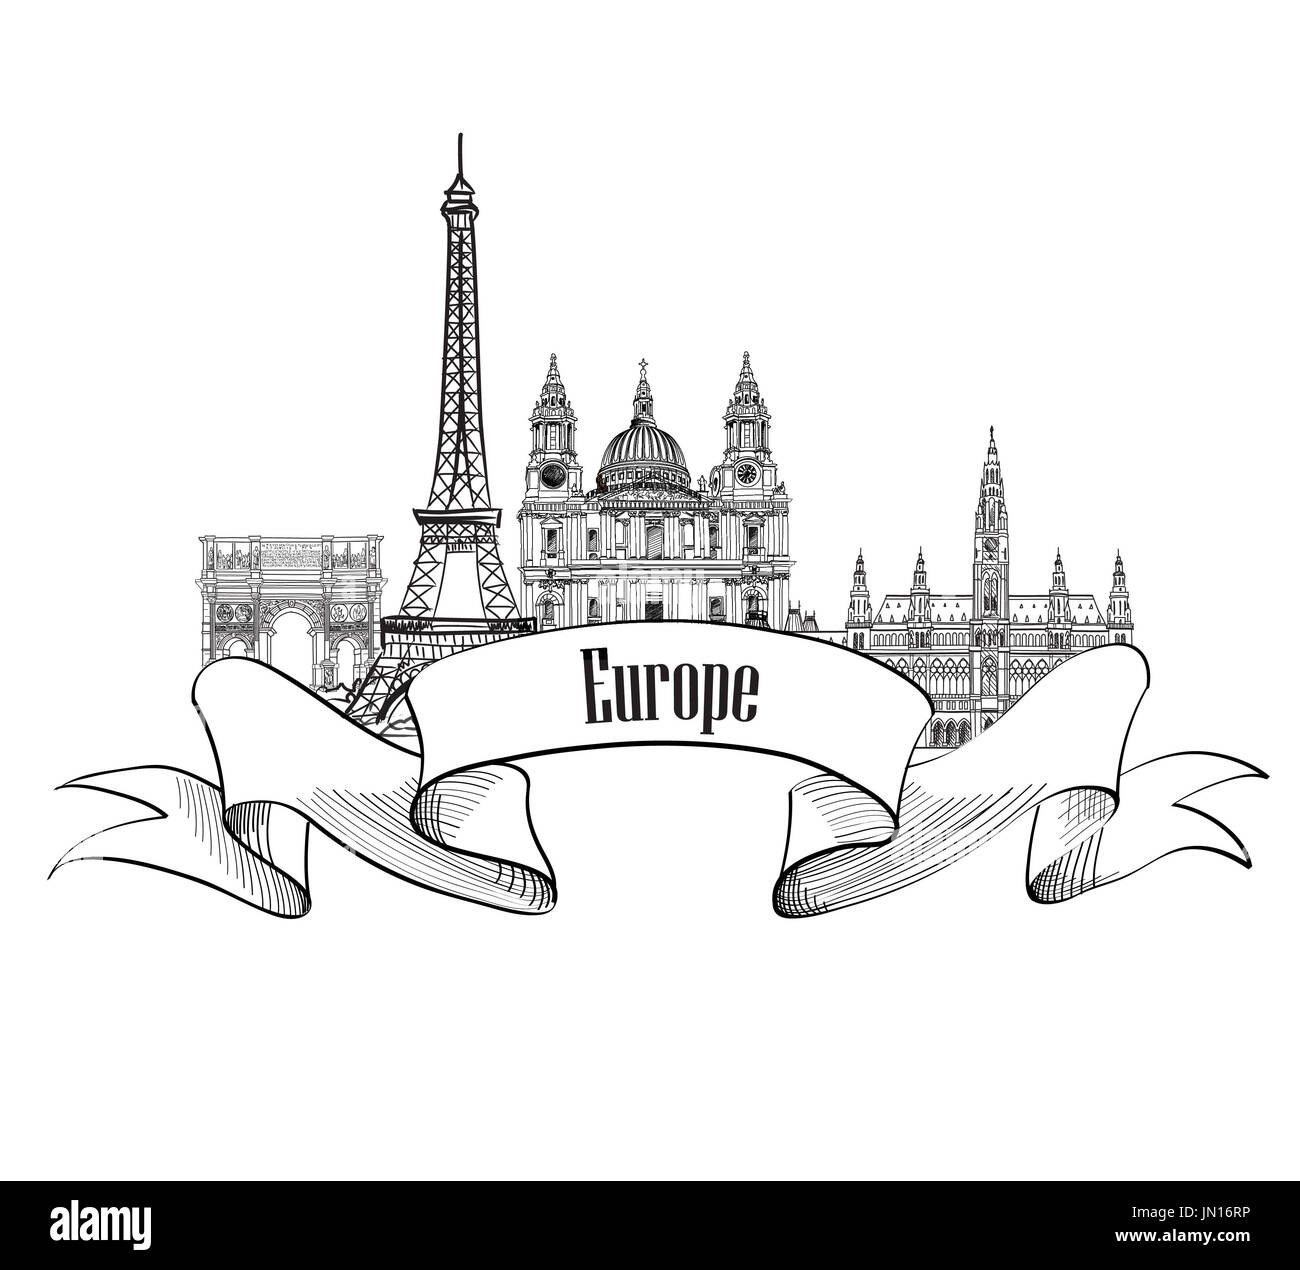 Travel Europe label. Famous buildings and landmarks. European capital city emblem. - Stock Image